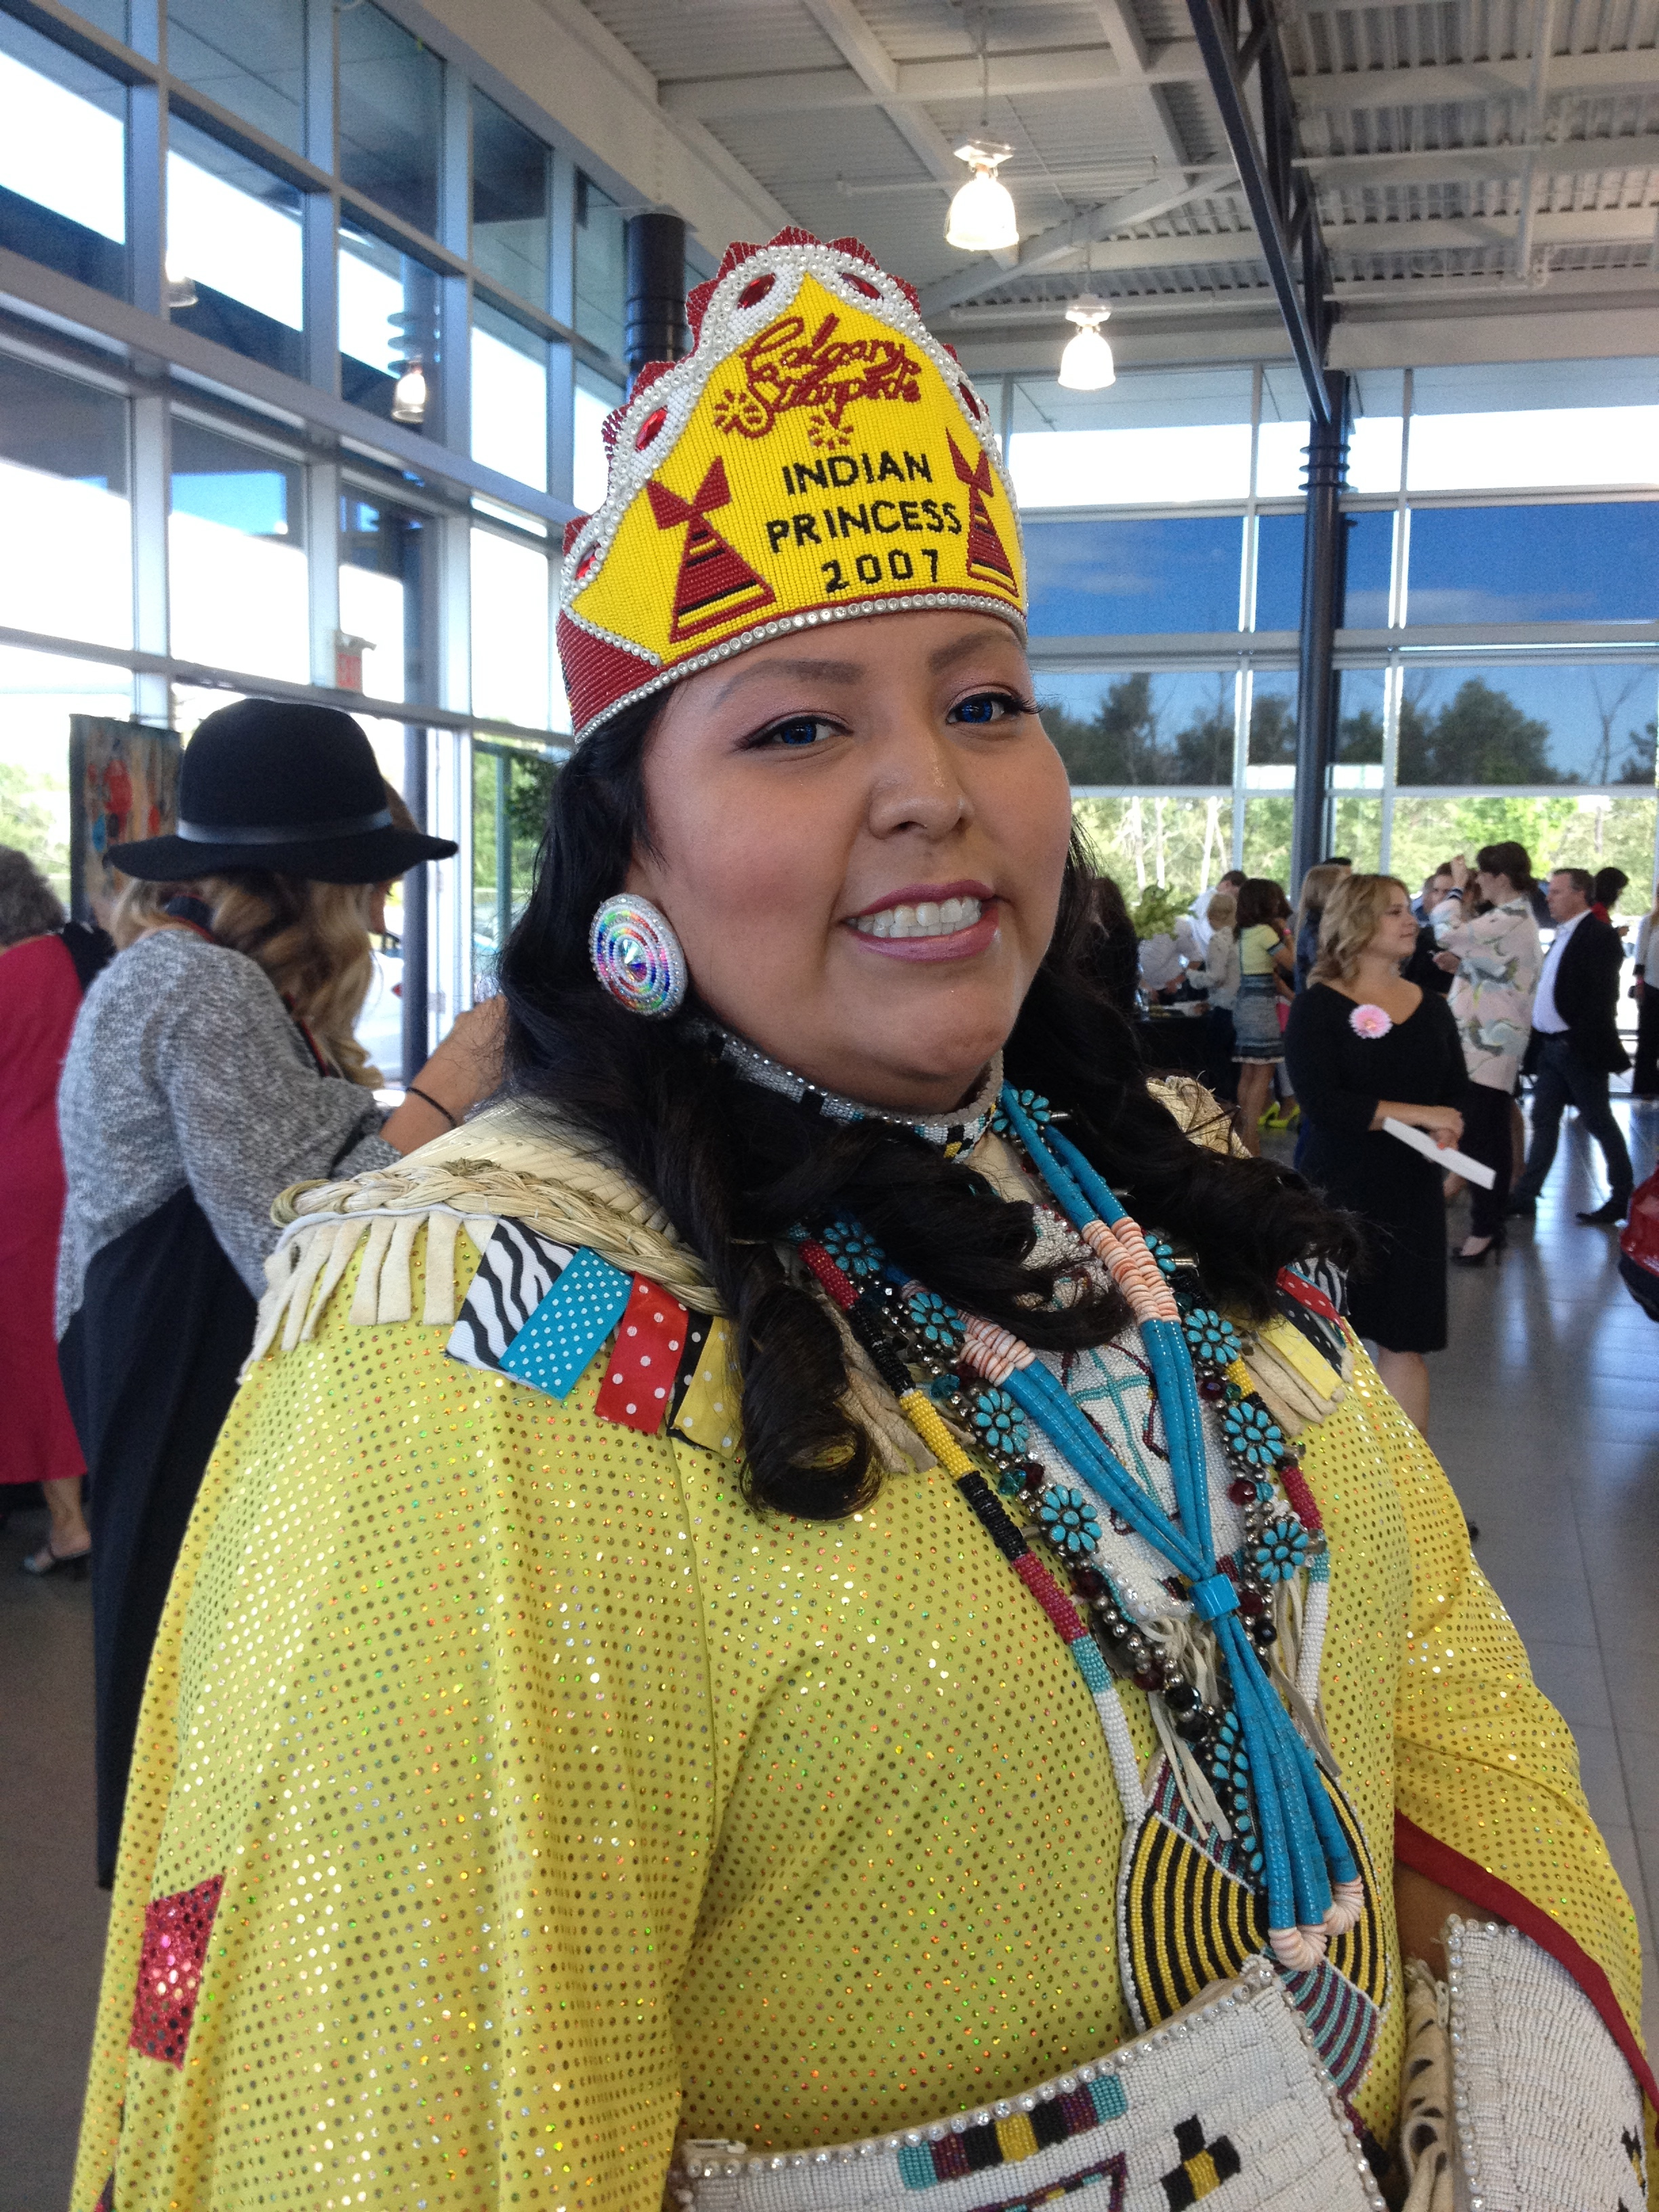 During a chat with Livia Manywounds, Calgary Stampede Indian Princess 2007, now filmmaker and businesswoman.